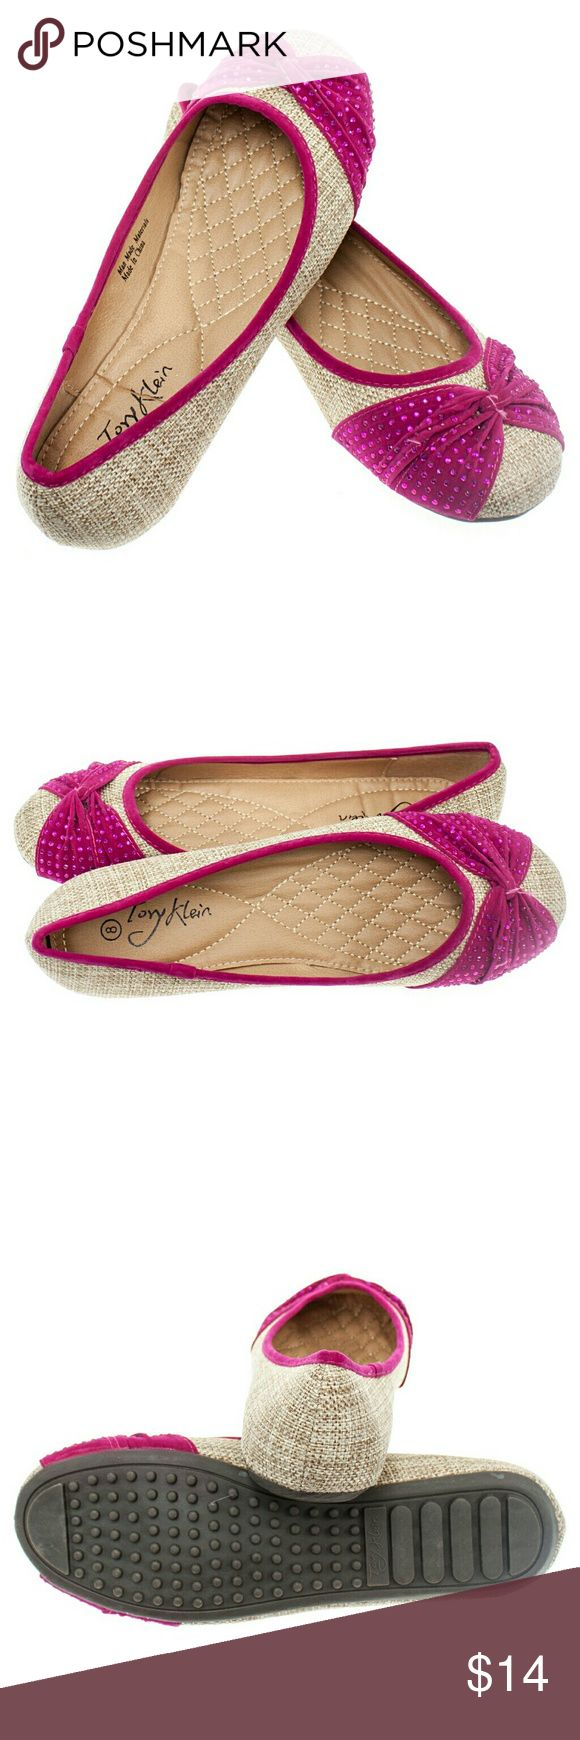 "Women 'Curtsy' Fabric Flats,  b1406, Beige Fuchsia Brand new Tory K light beige - fuchsia woman ballerina flats with a sequined twist in the front. Soft cushioned sole, very comfortable. Bubbled bottom sole for extra traction. A true staple in ladies shoes fashion! Measurements: larger sizes run small. Size 8 measures 9.5"", sz 8.5 - 9 3/4"", sz 9 - 10"", sz 9.5 - 10 1/4"", sz 10 - 10.5"", all half sizes are in 1/4"" increments of each other. Tory K  Shoes Flats & Loafers"